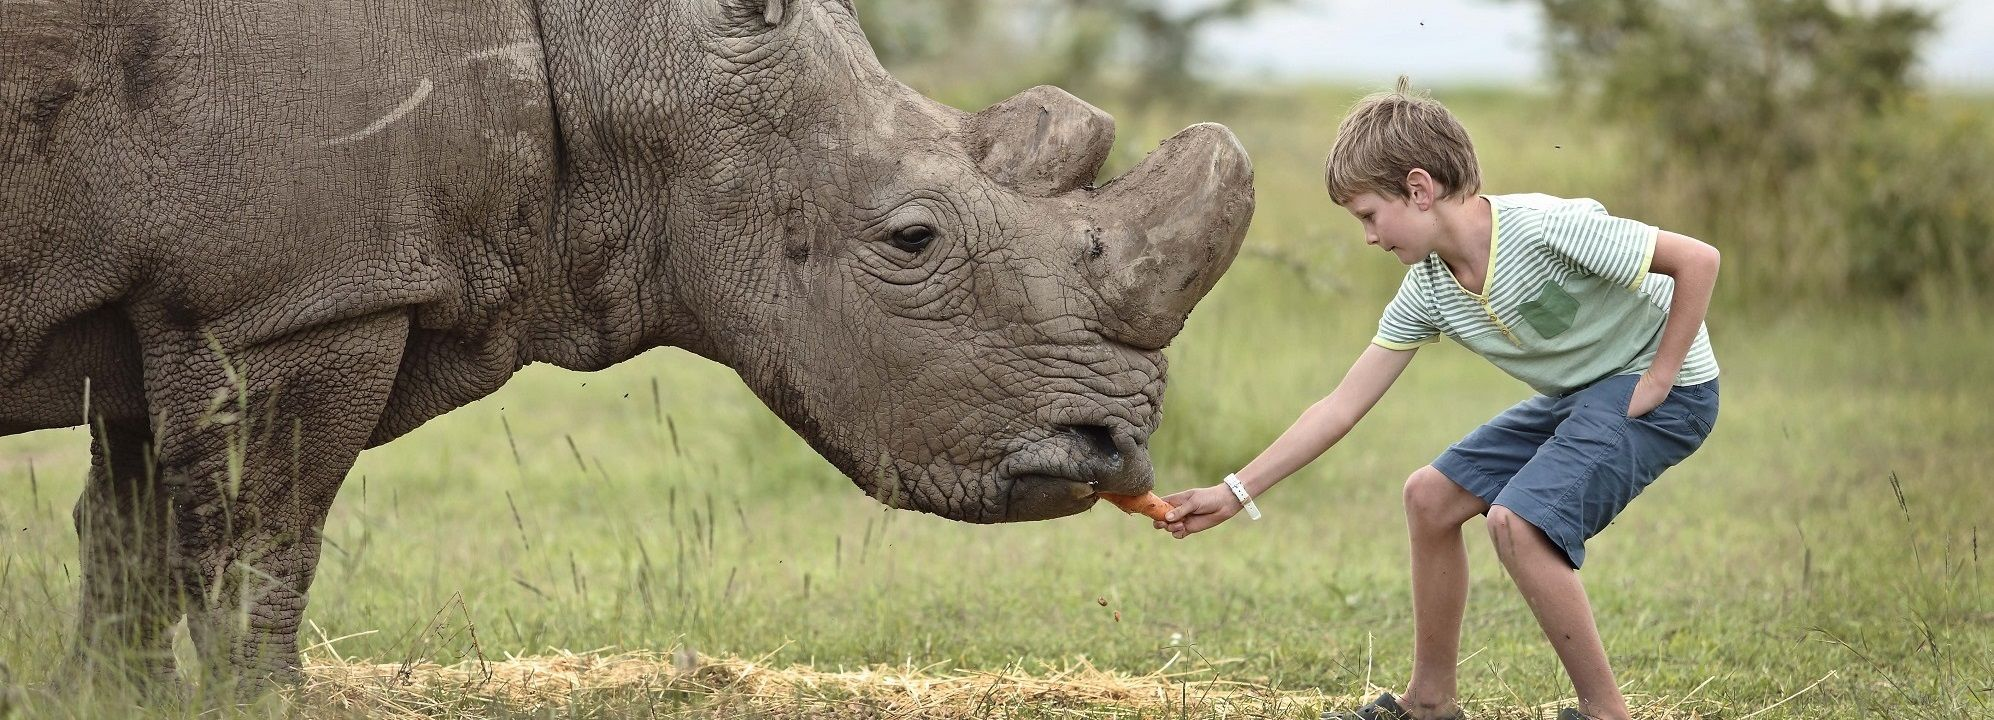 Boy interacting with rhino, Inspiring Encounters OPBC